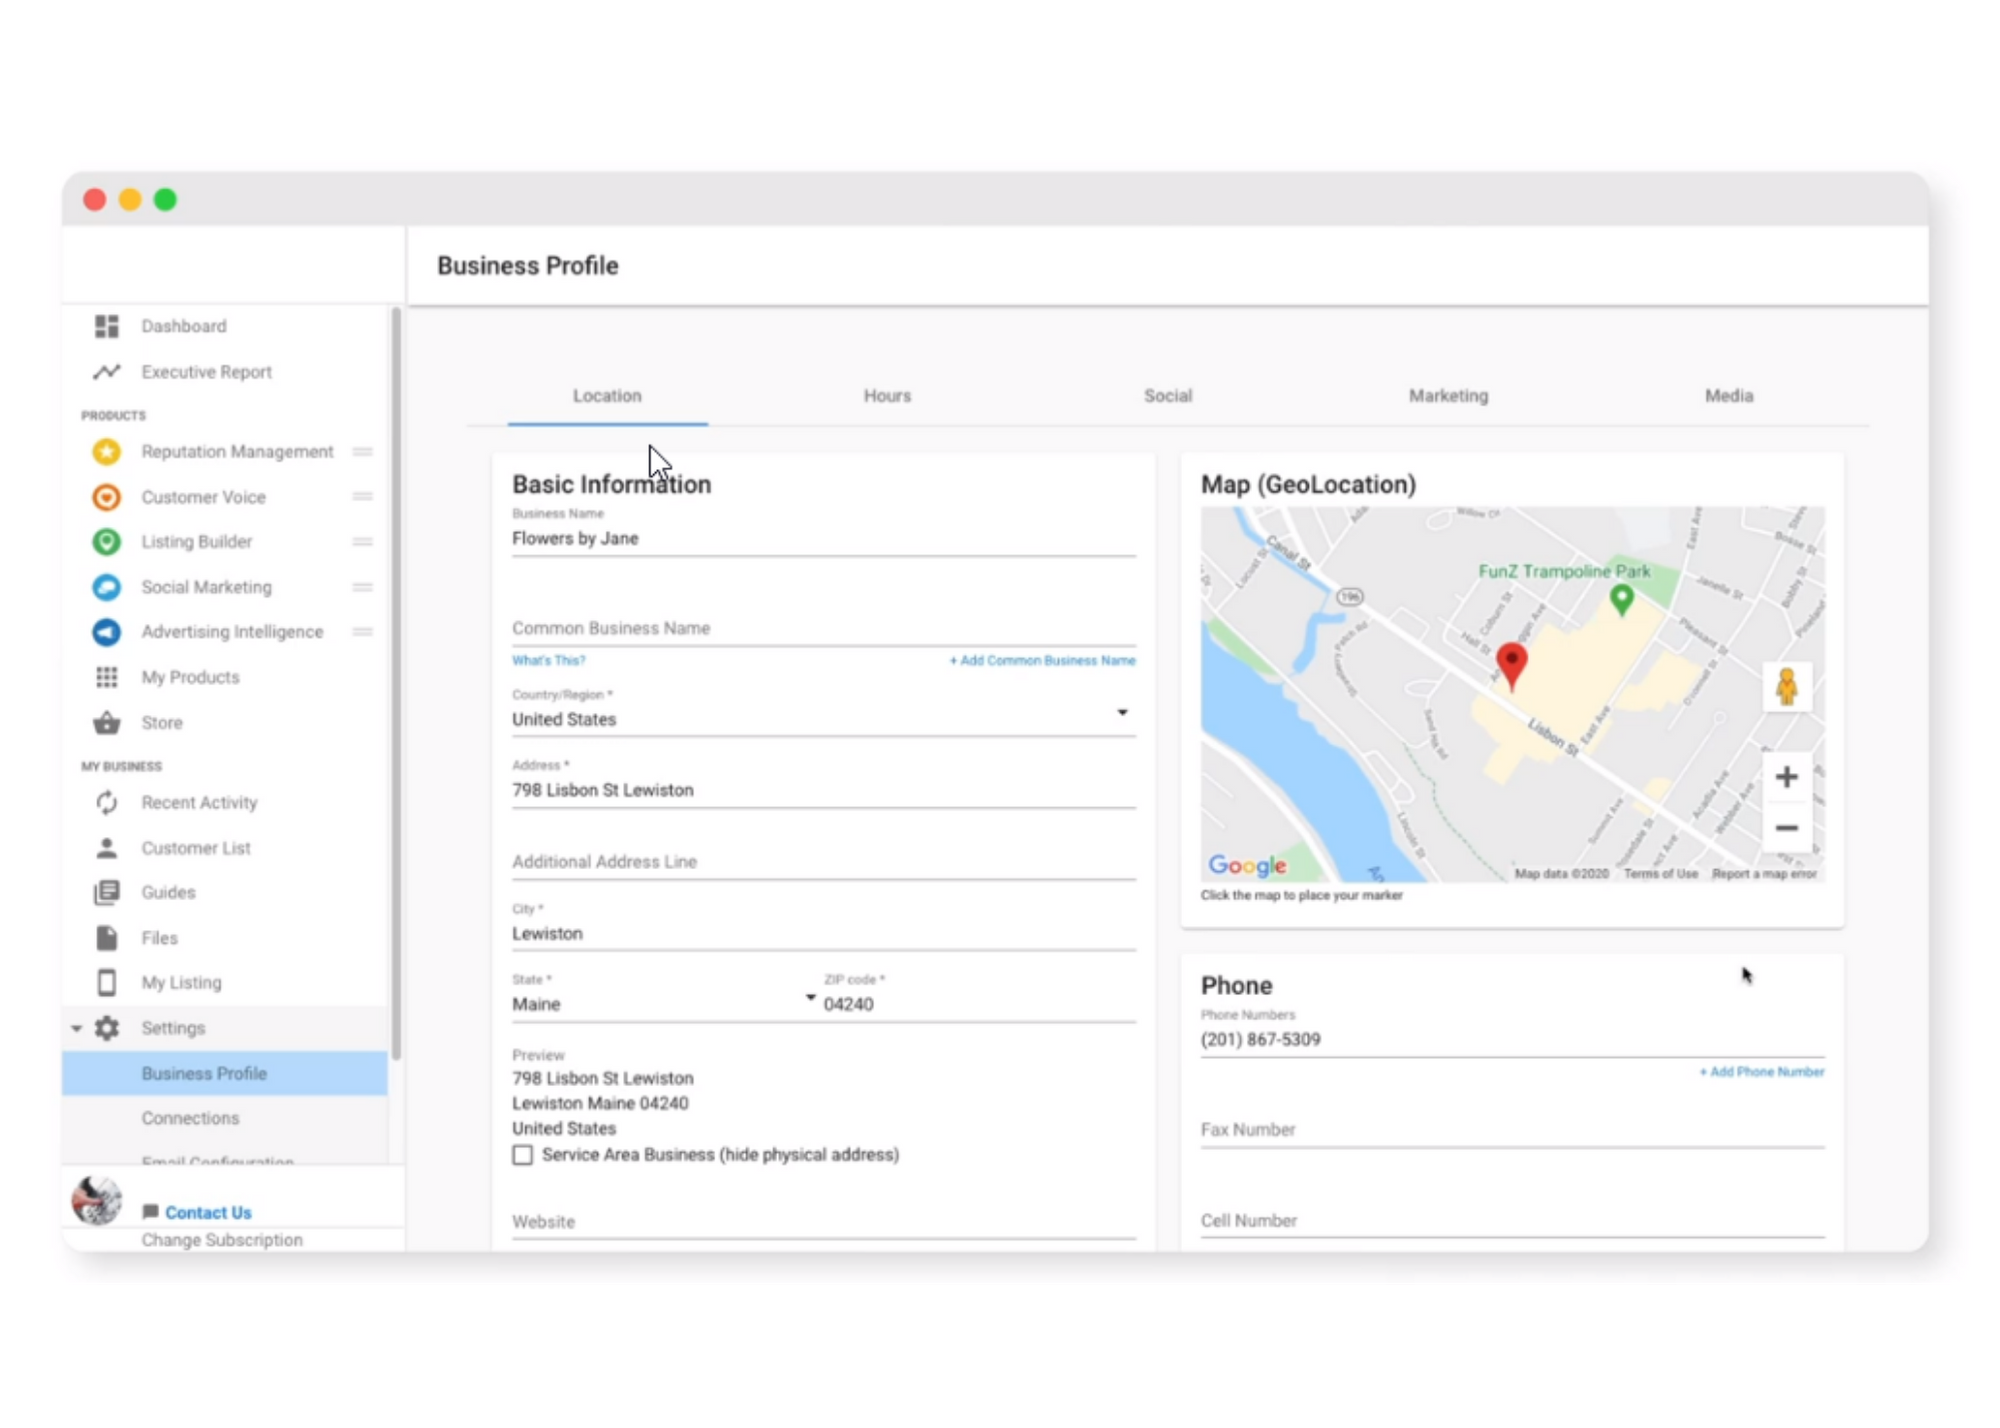 Business Listing Dashboard displays google map and empty fields related to reputation